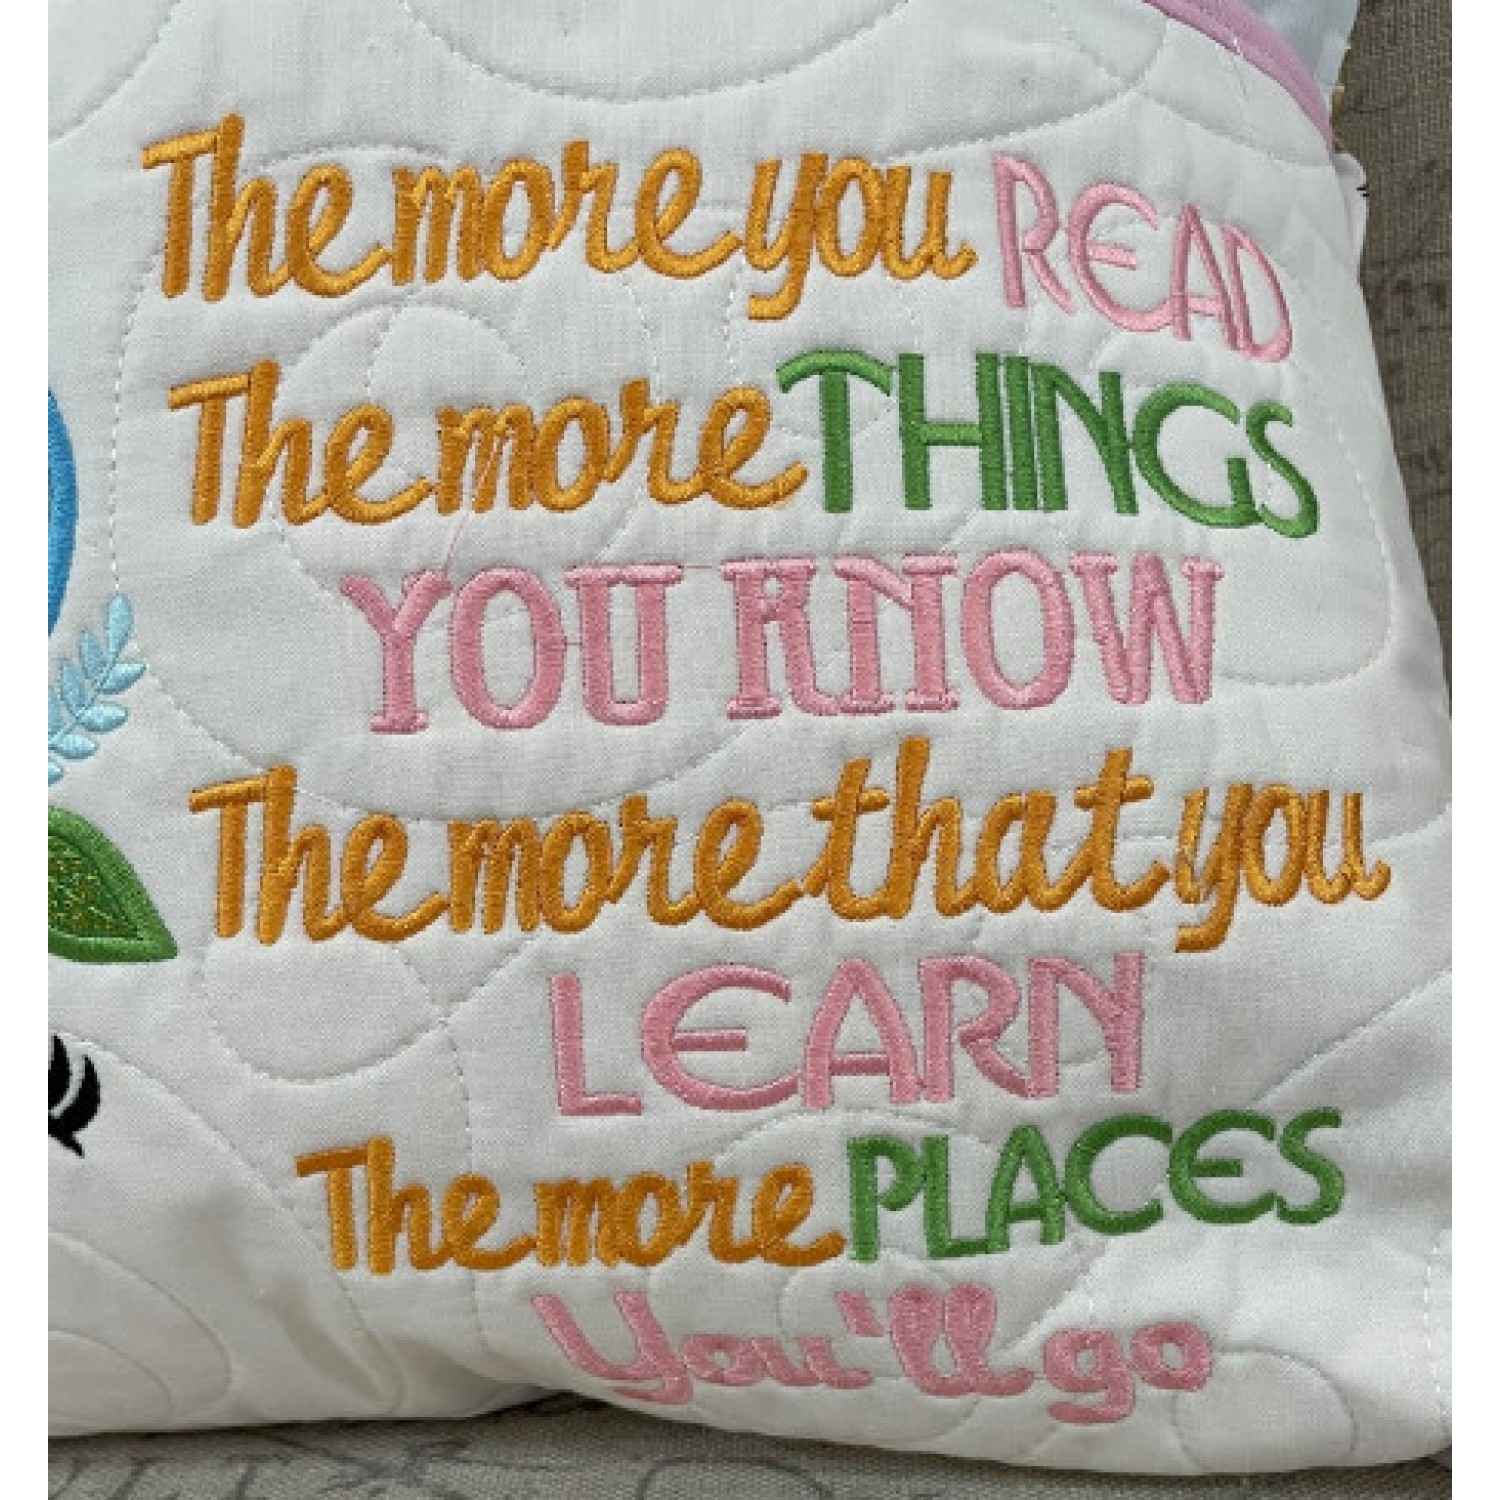 The more you read Embroidery